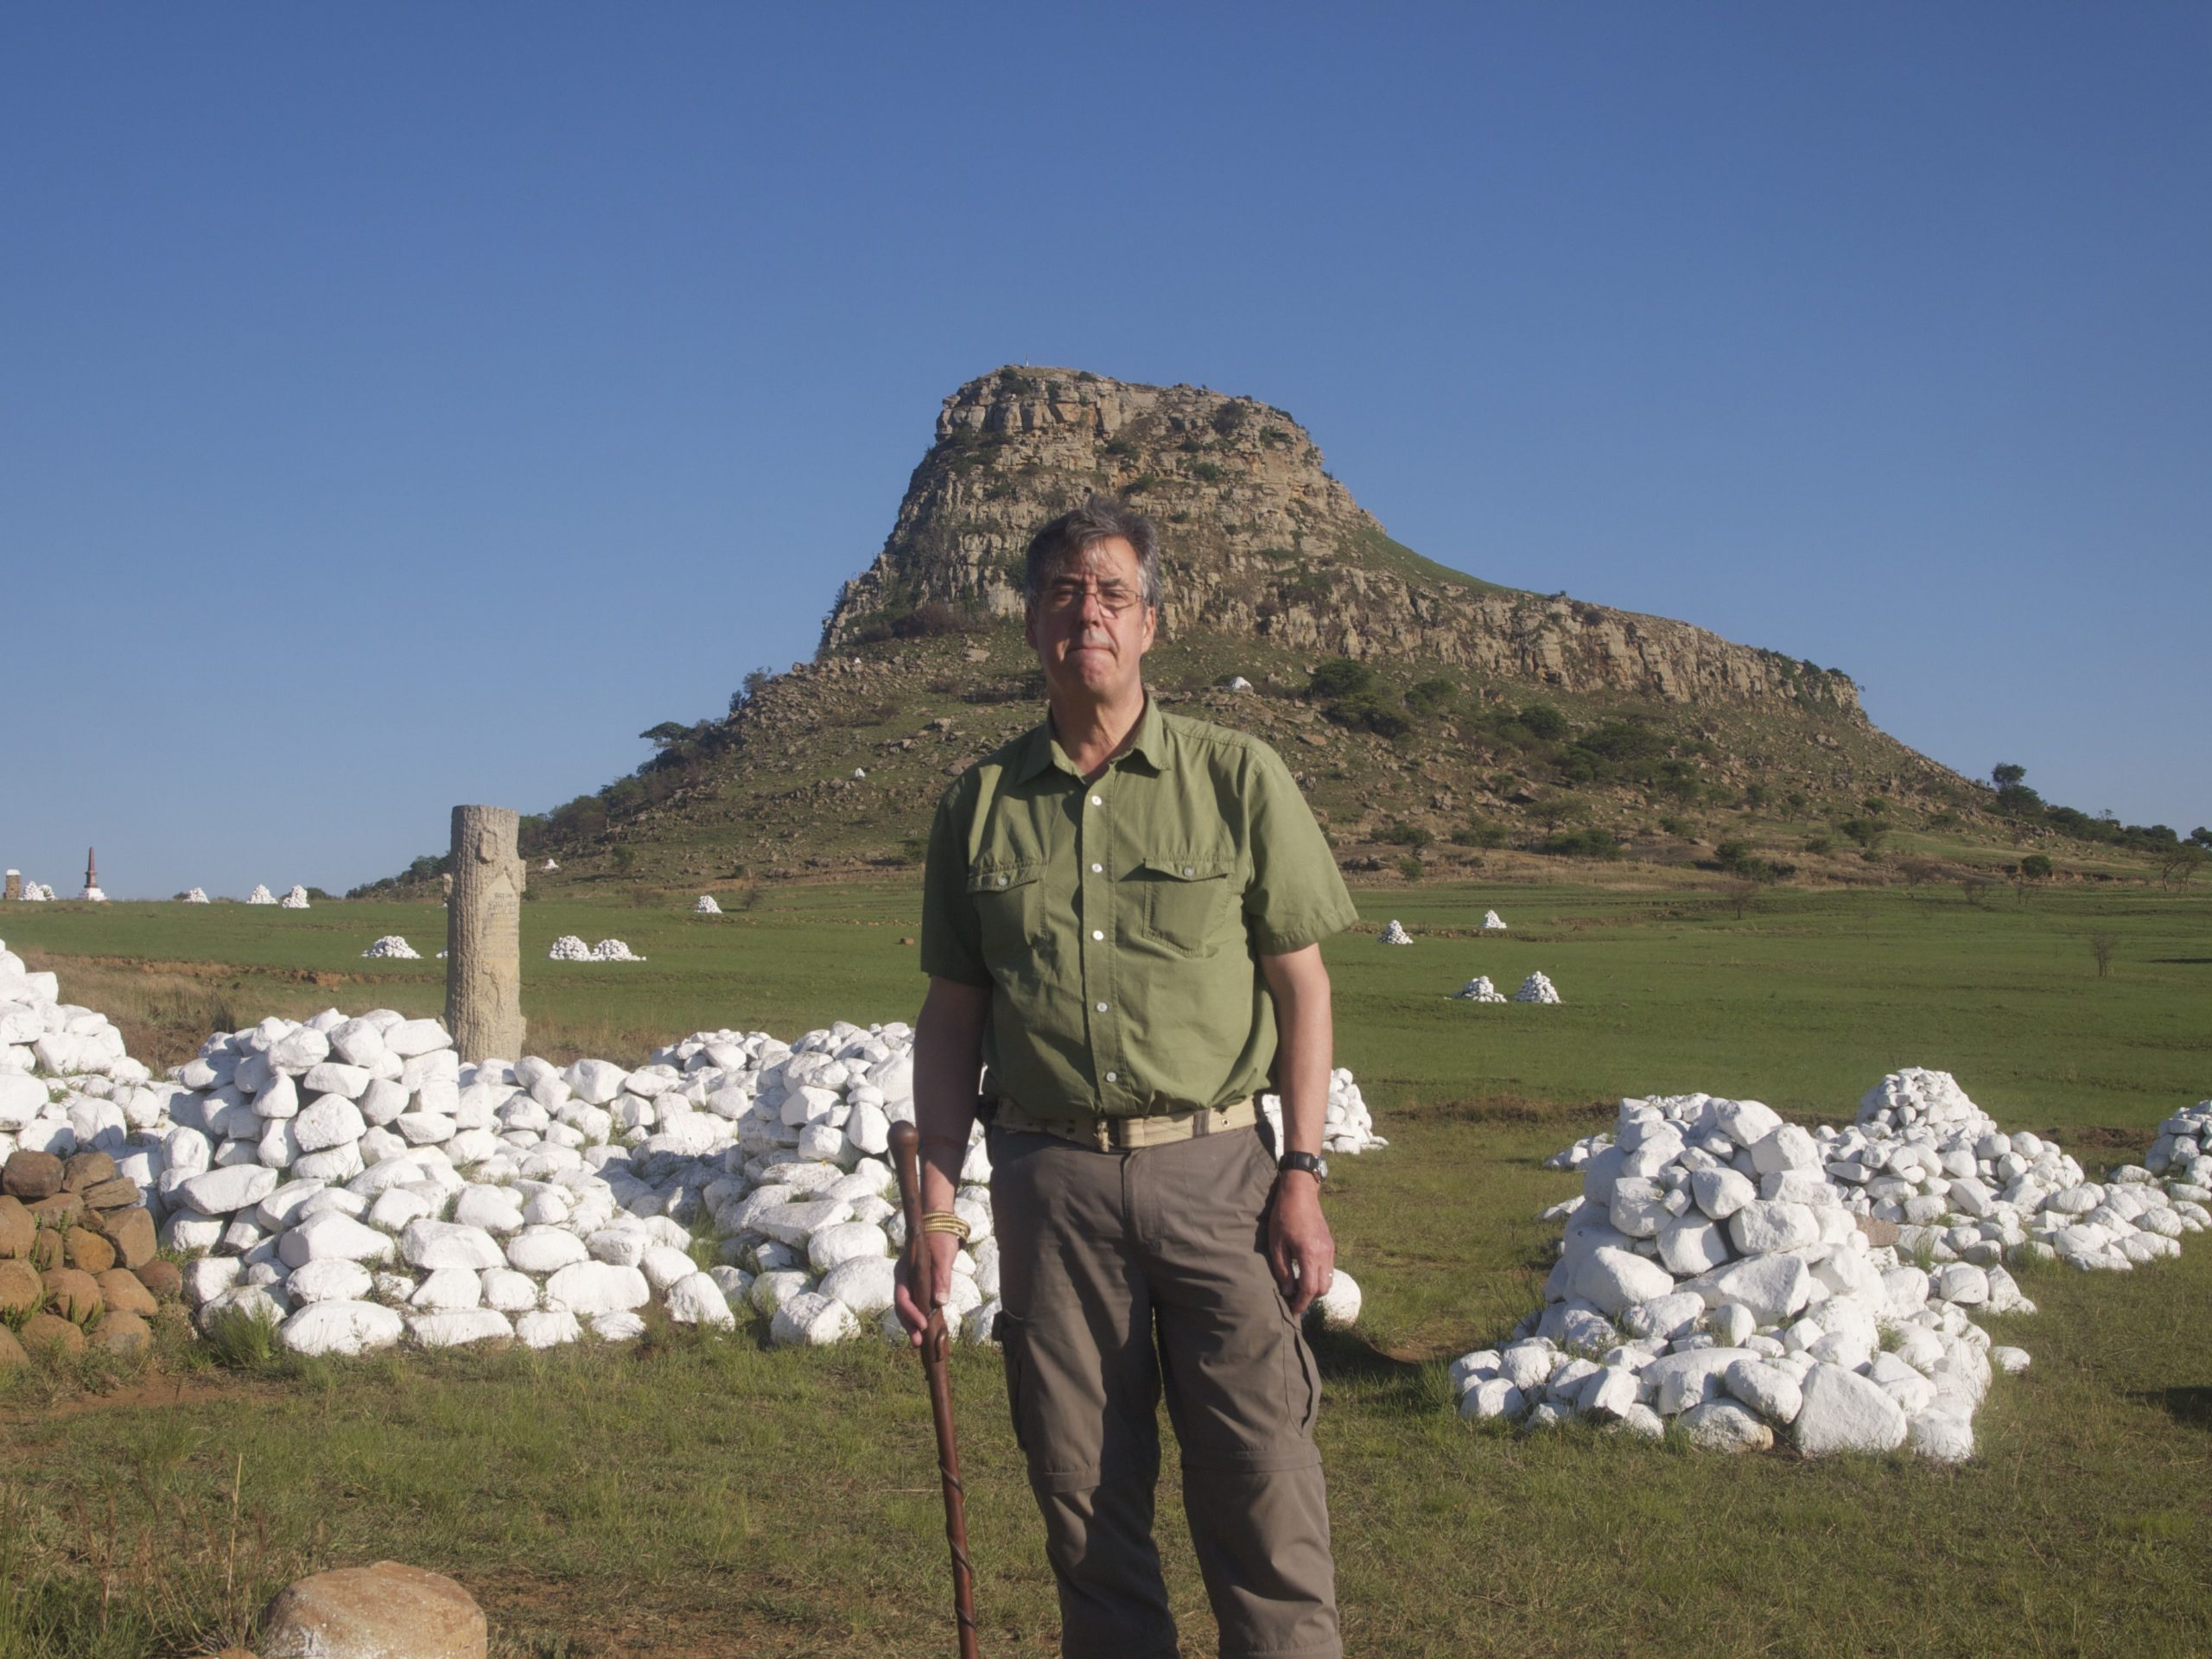 Ian Knight at Isandlwana